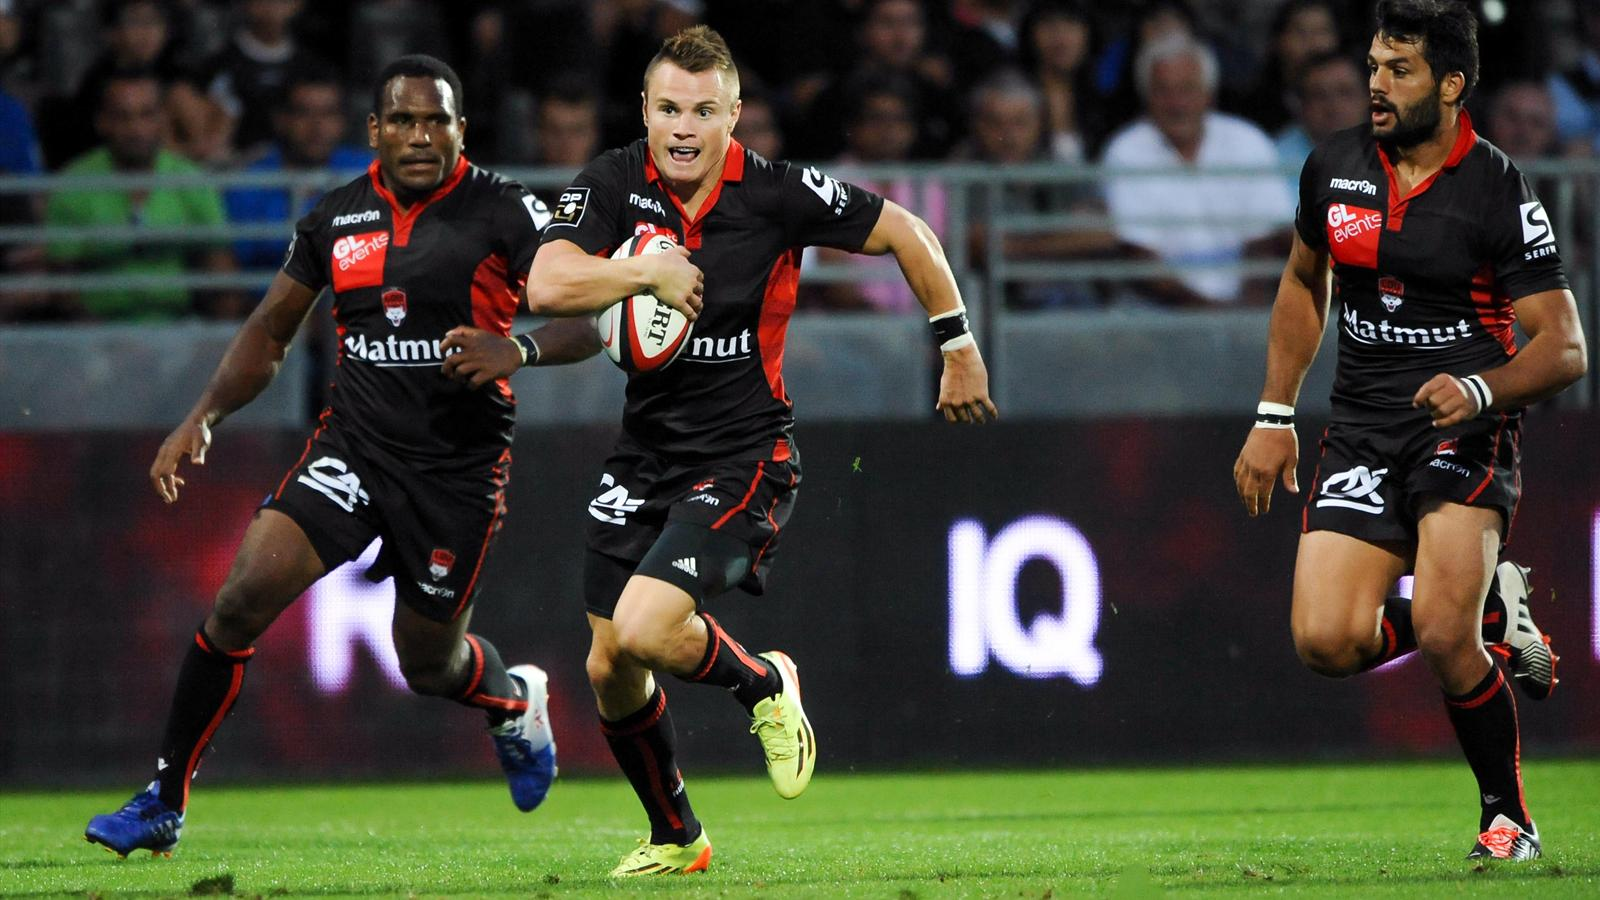 top 14 match lyon lou toulon rugby en direct sur canal sport et en streaming sur internet 14. Black Bedroom Furniture Sets. Home Design Ideas